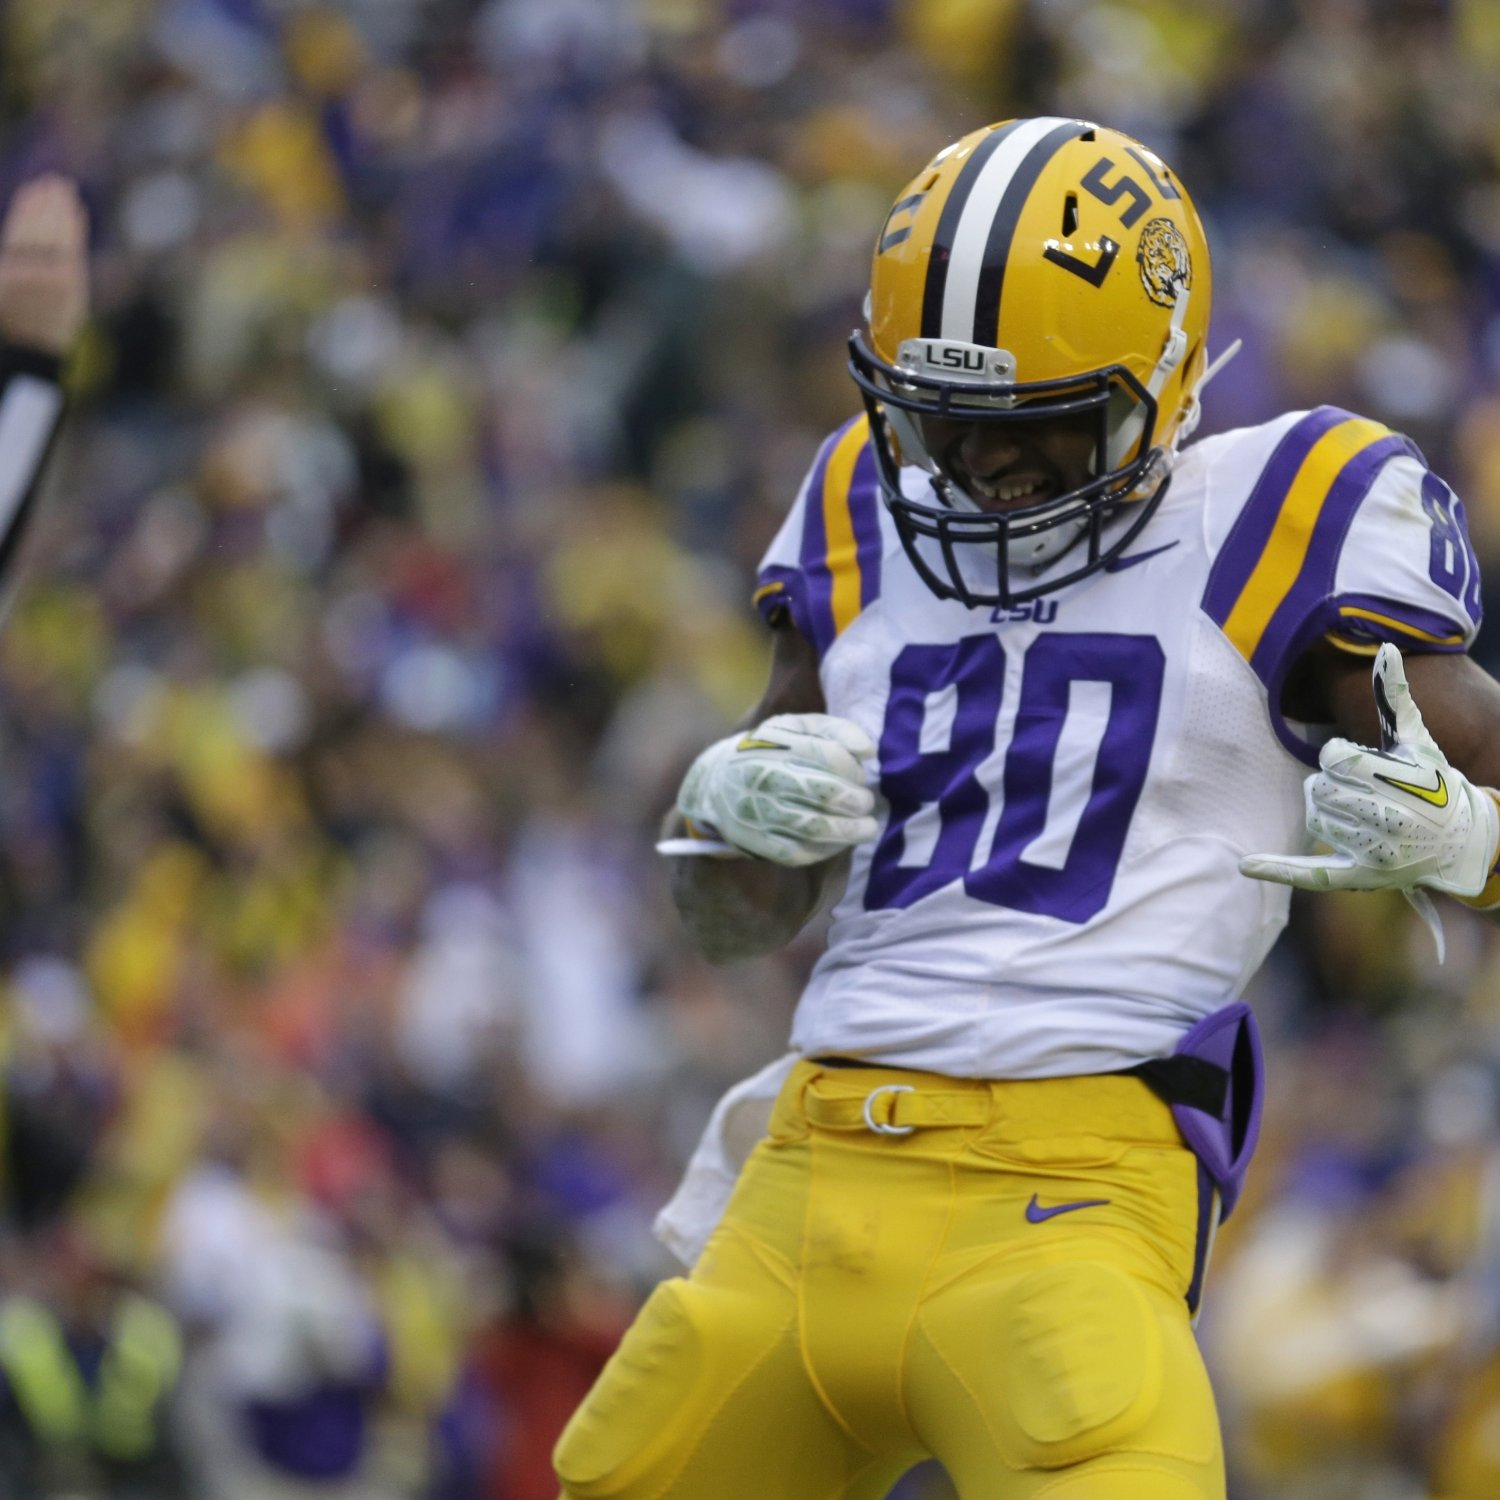 San Diego Chargers Draft: Which 2014 Draft Prospect Should The Chargers Pair With